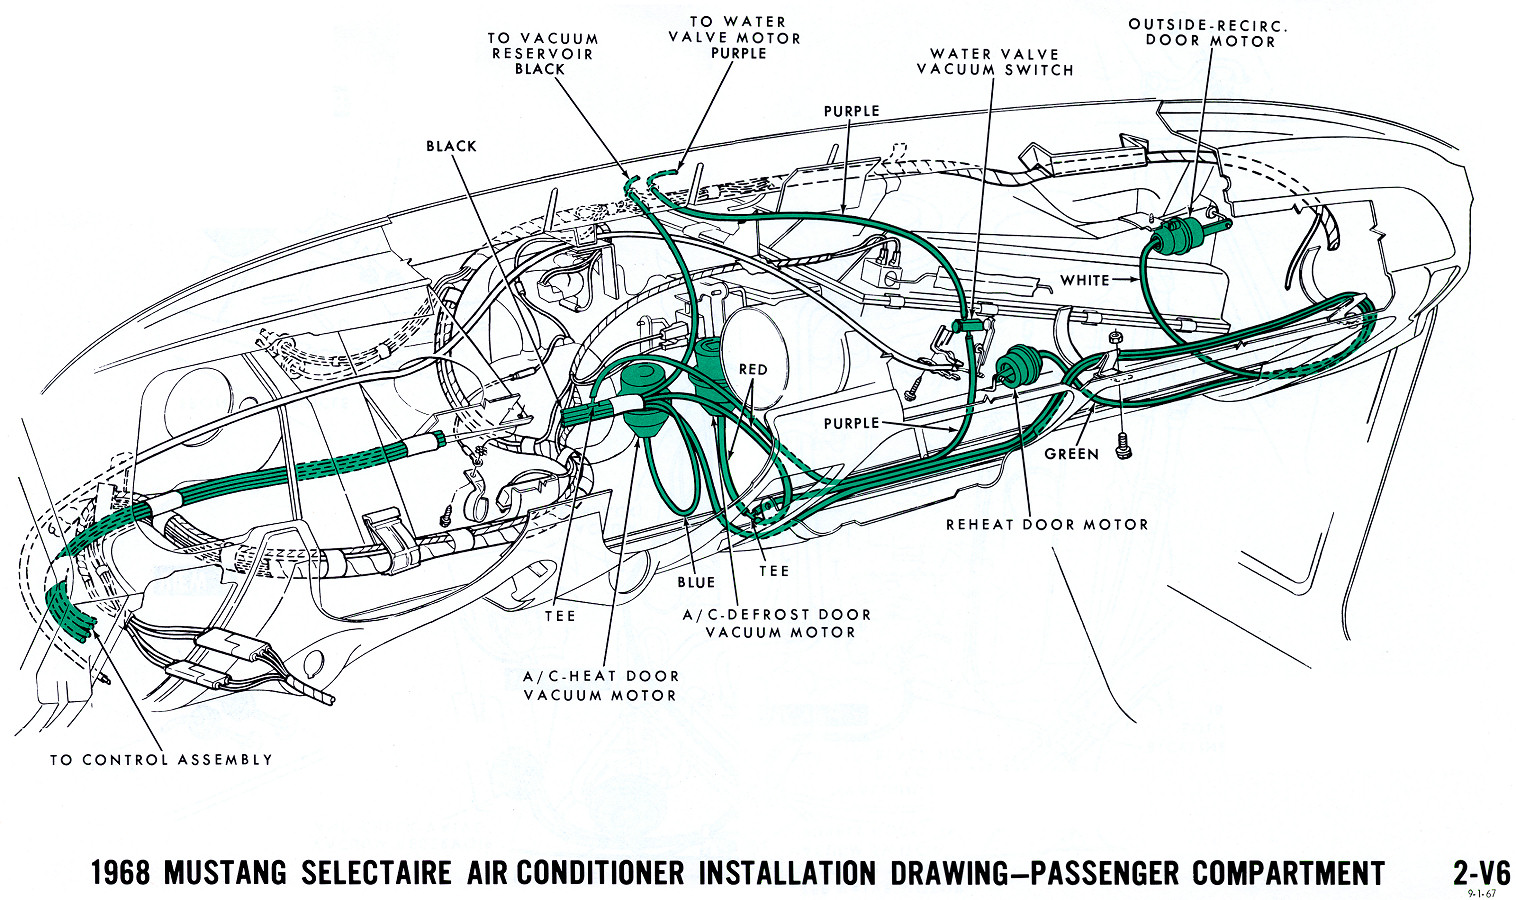 Mustang Vacuum Diagram Air Conditioning Interior on 1966 Mustang Heater Wiring Diagram